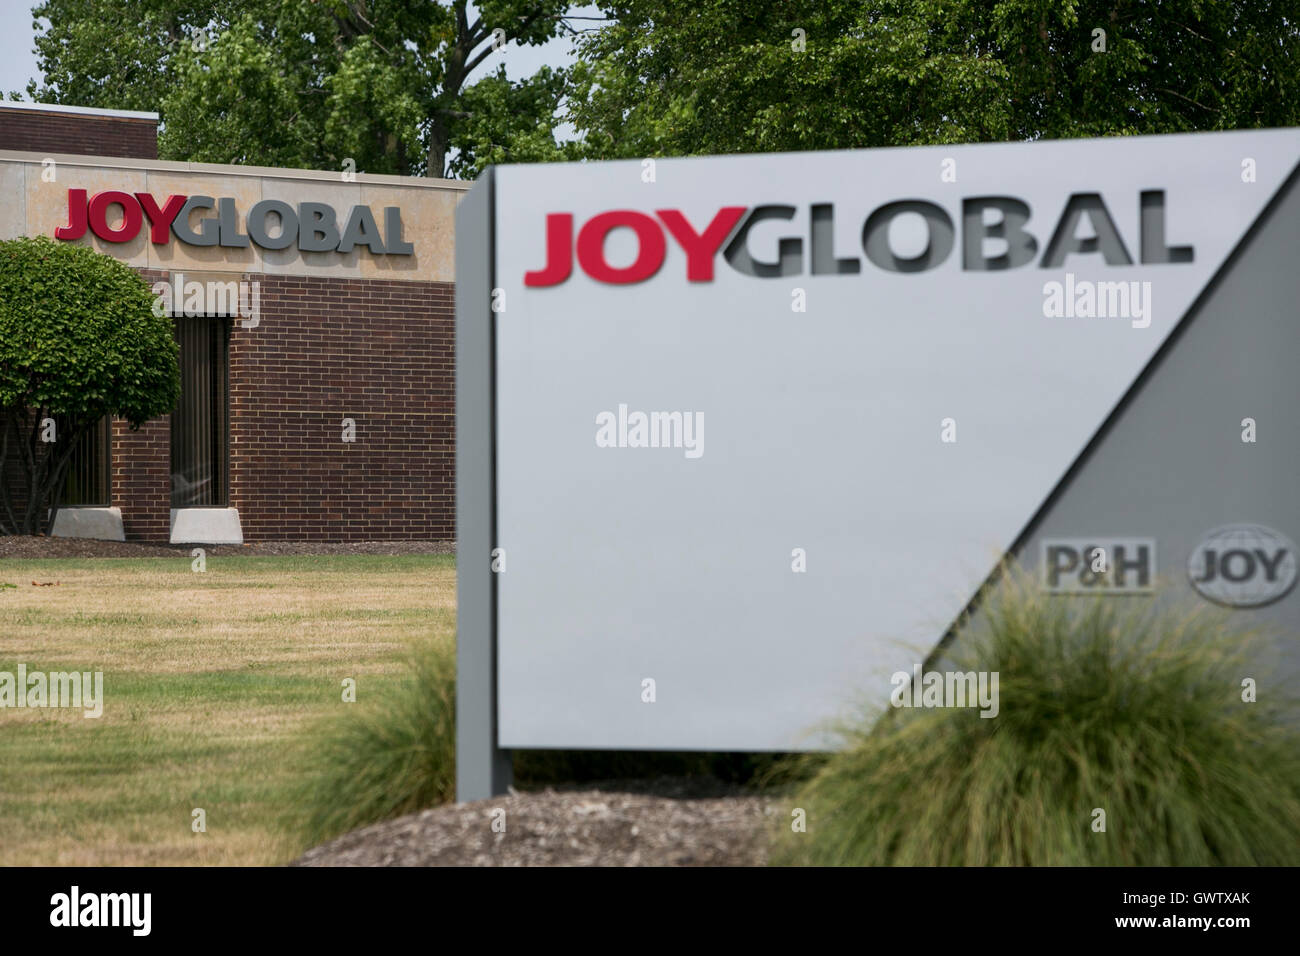 A logo sign outside of a Joy Global, Inc., facility in Cleveland, Ohio on July 21, 2016. Stock Photo